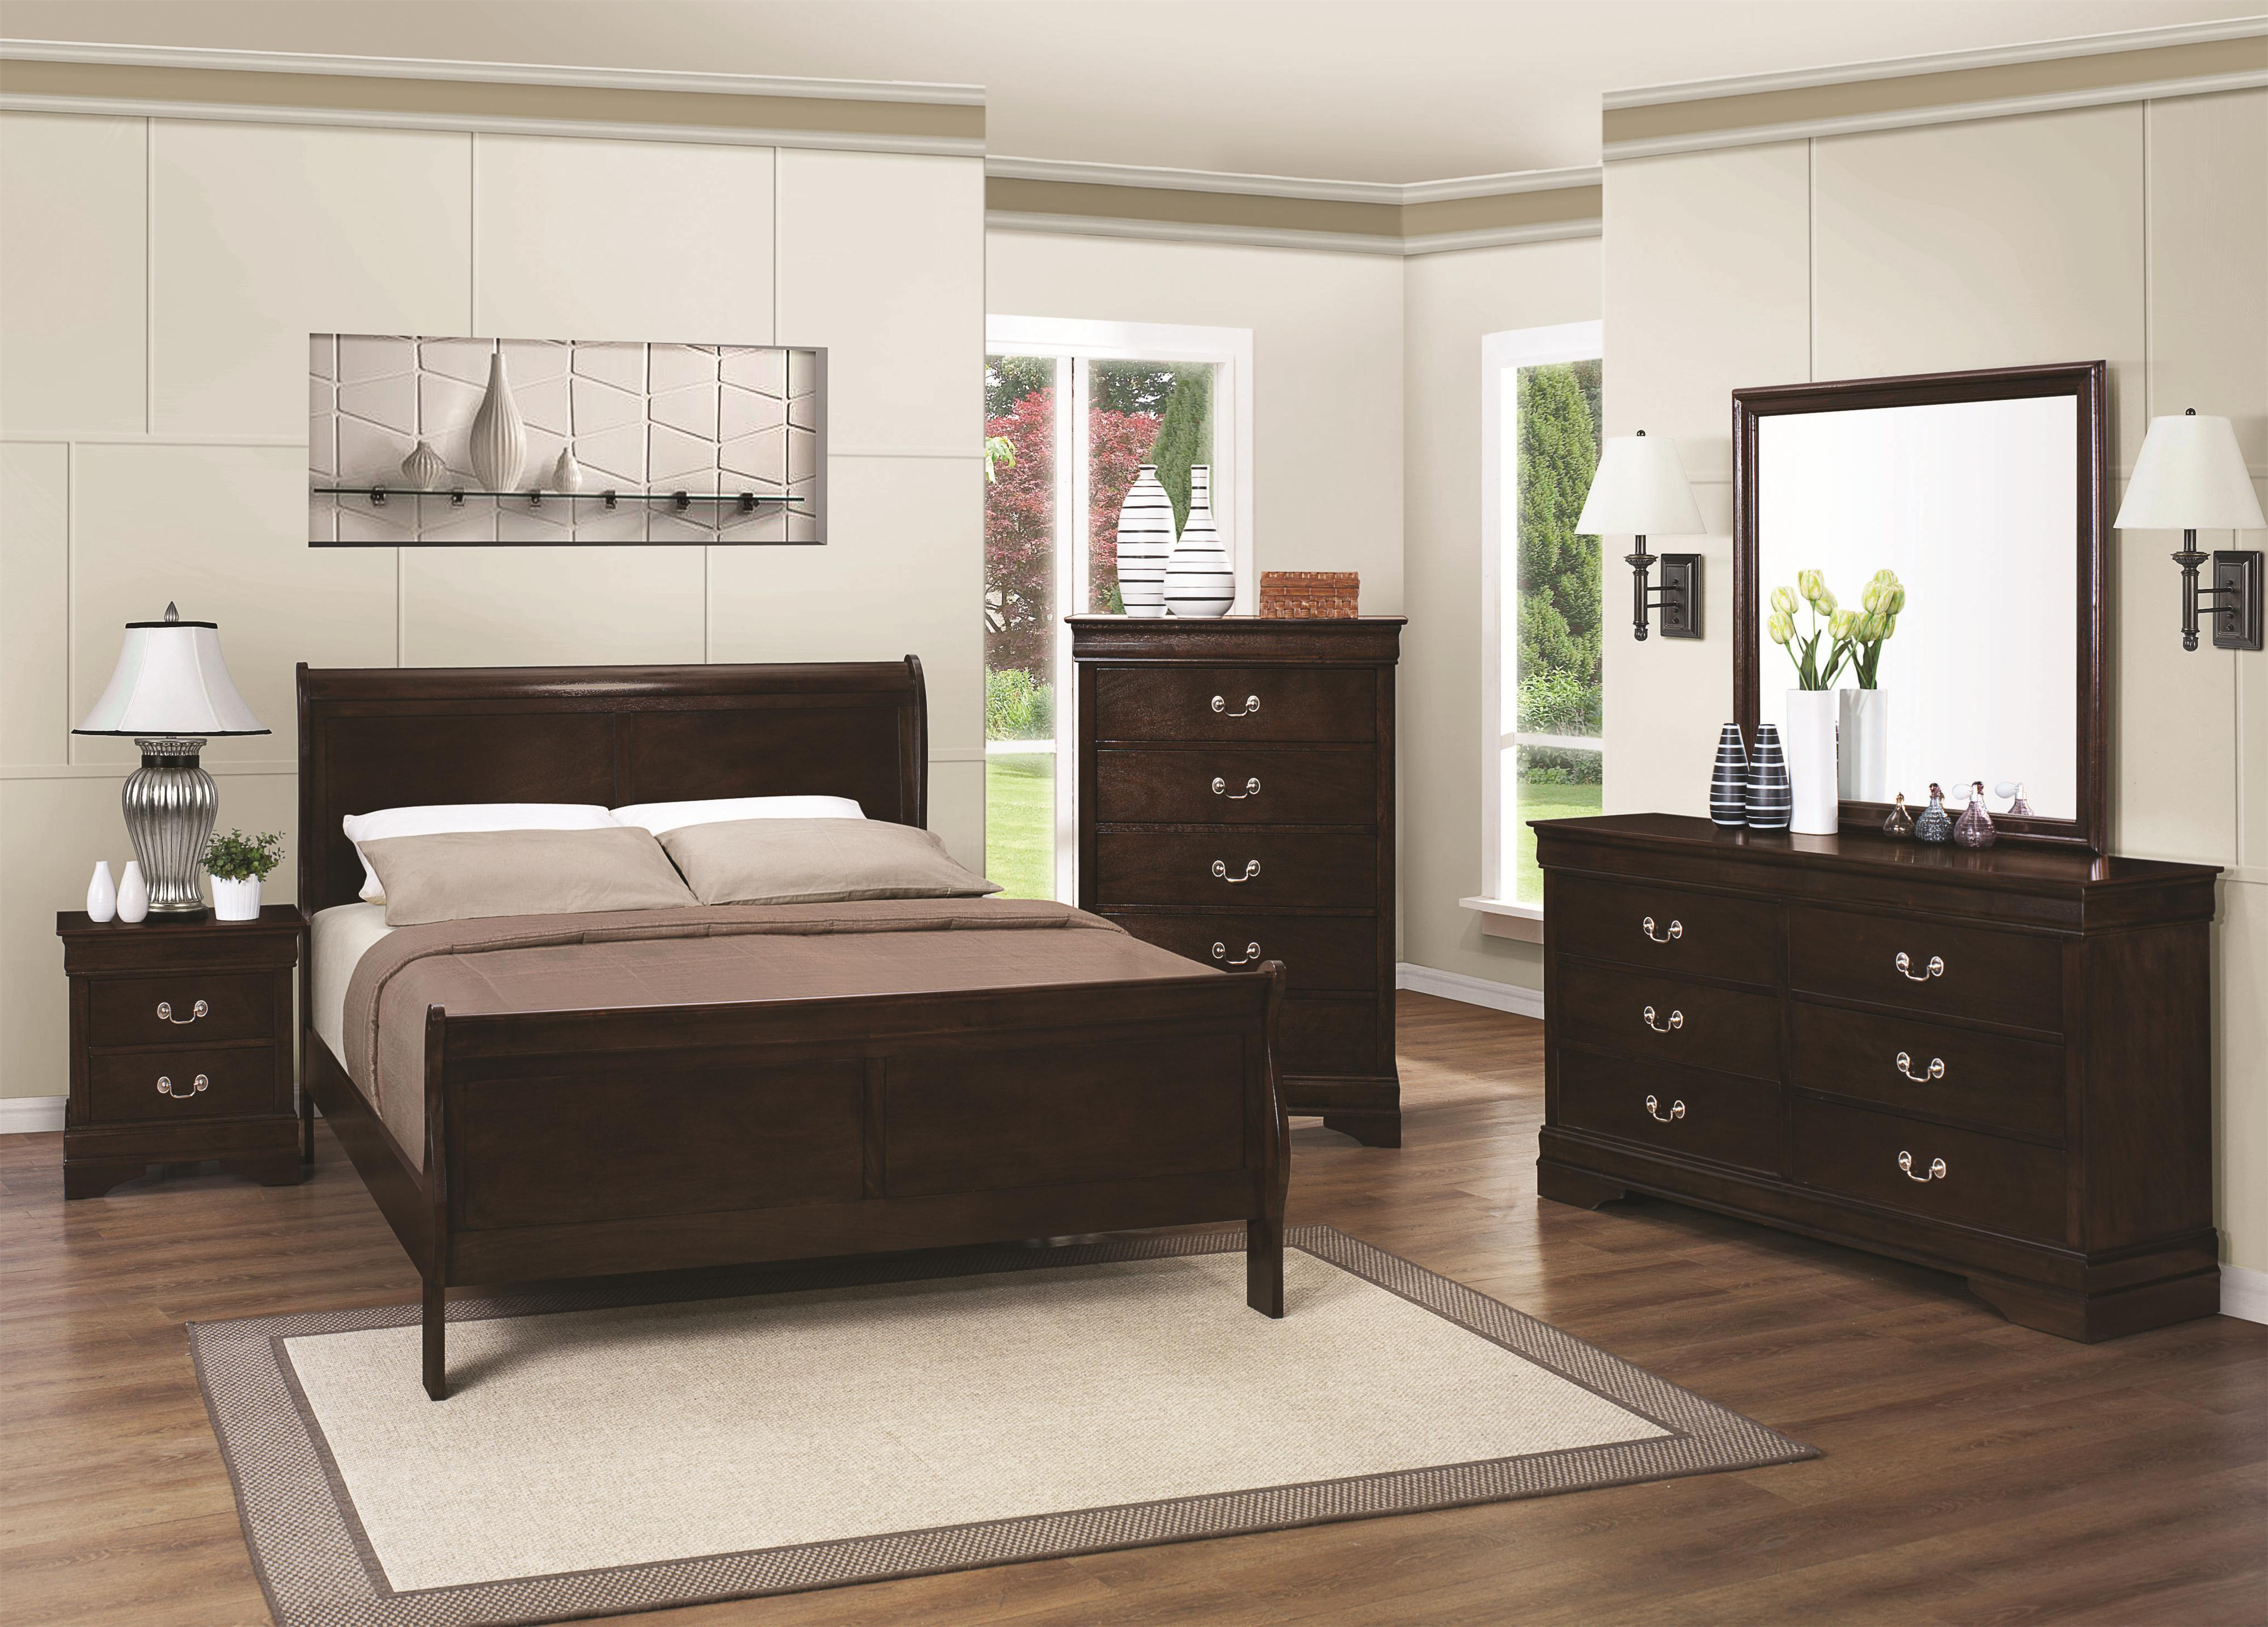 Picture of: Classic Louis Philippe Bedroom Furniture 4pc Set Eastern King Size Sleigh Bed Red Brown Finish Dresser Mirror Nightstand Hardwood Walmart Com Walmart Com